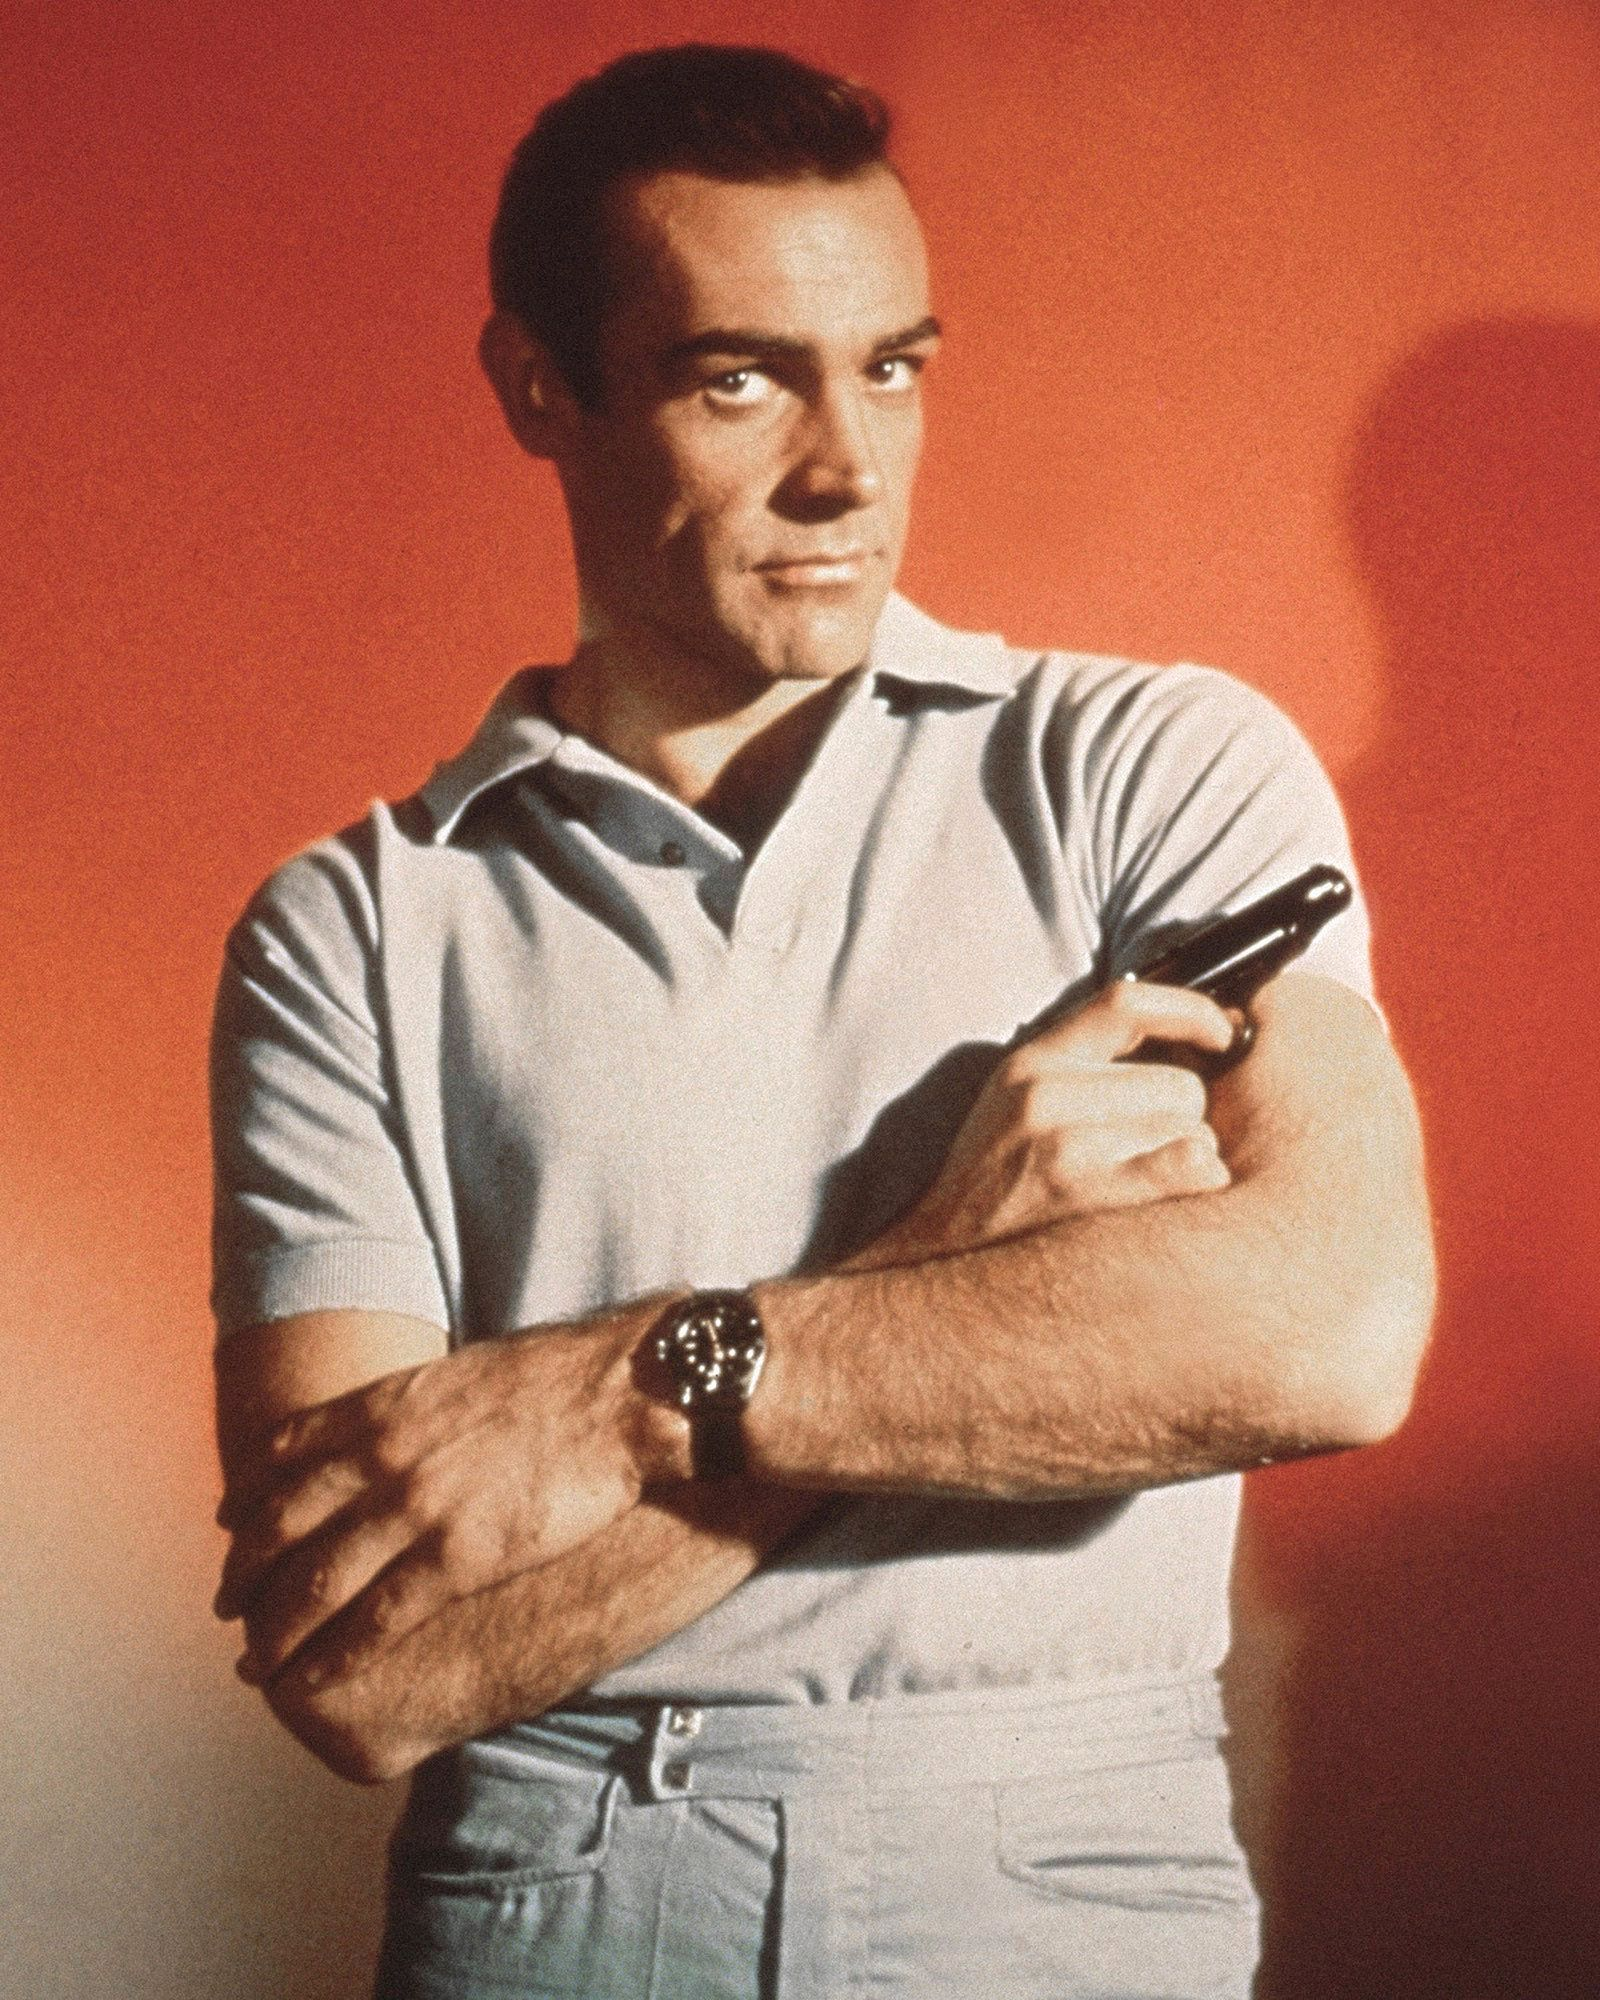 Sean-Connery-wearing a Rolex-Submariner 6538